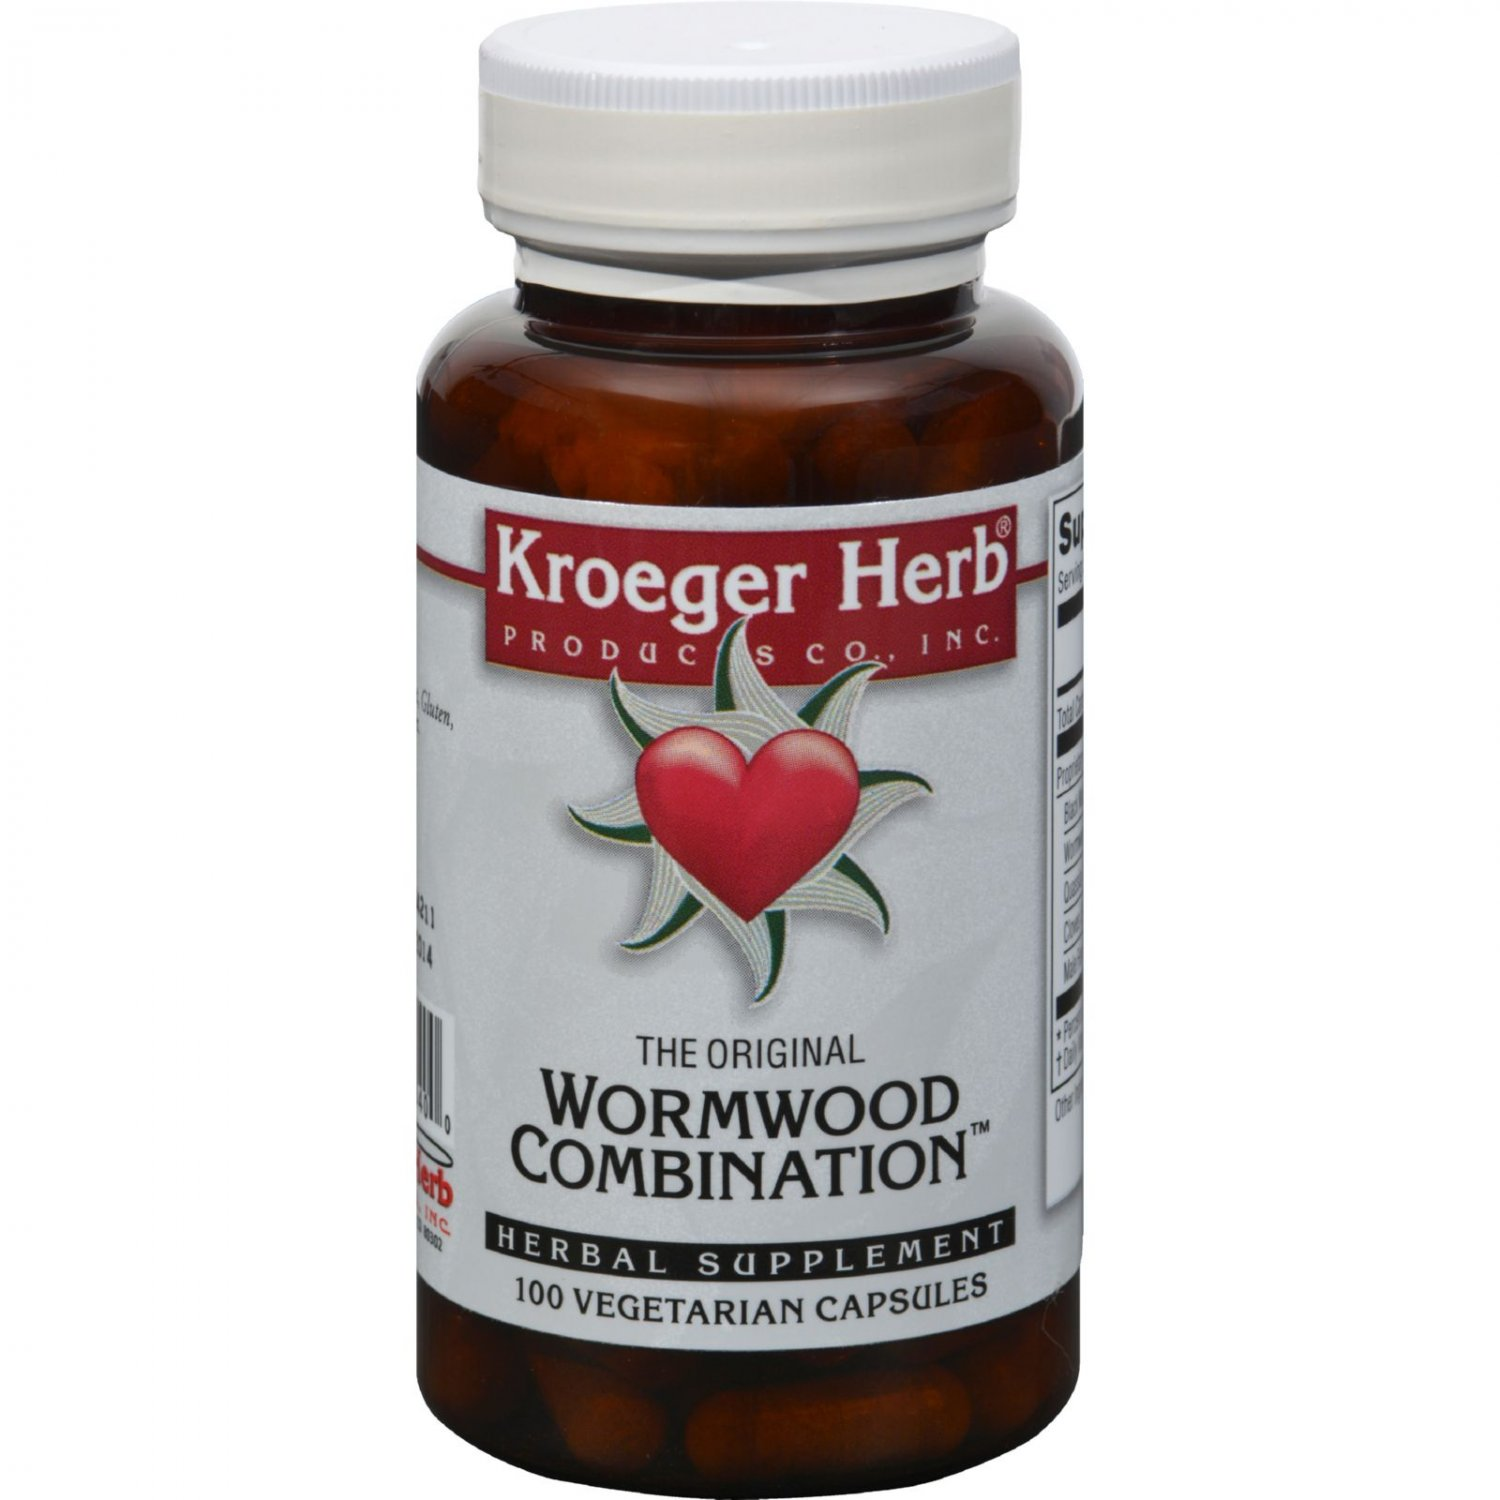 Kroeger Herb Wormwood Combination - 100 Vegetarian Capsules